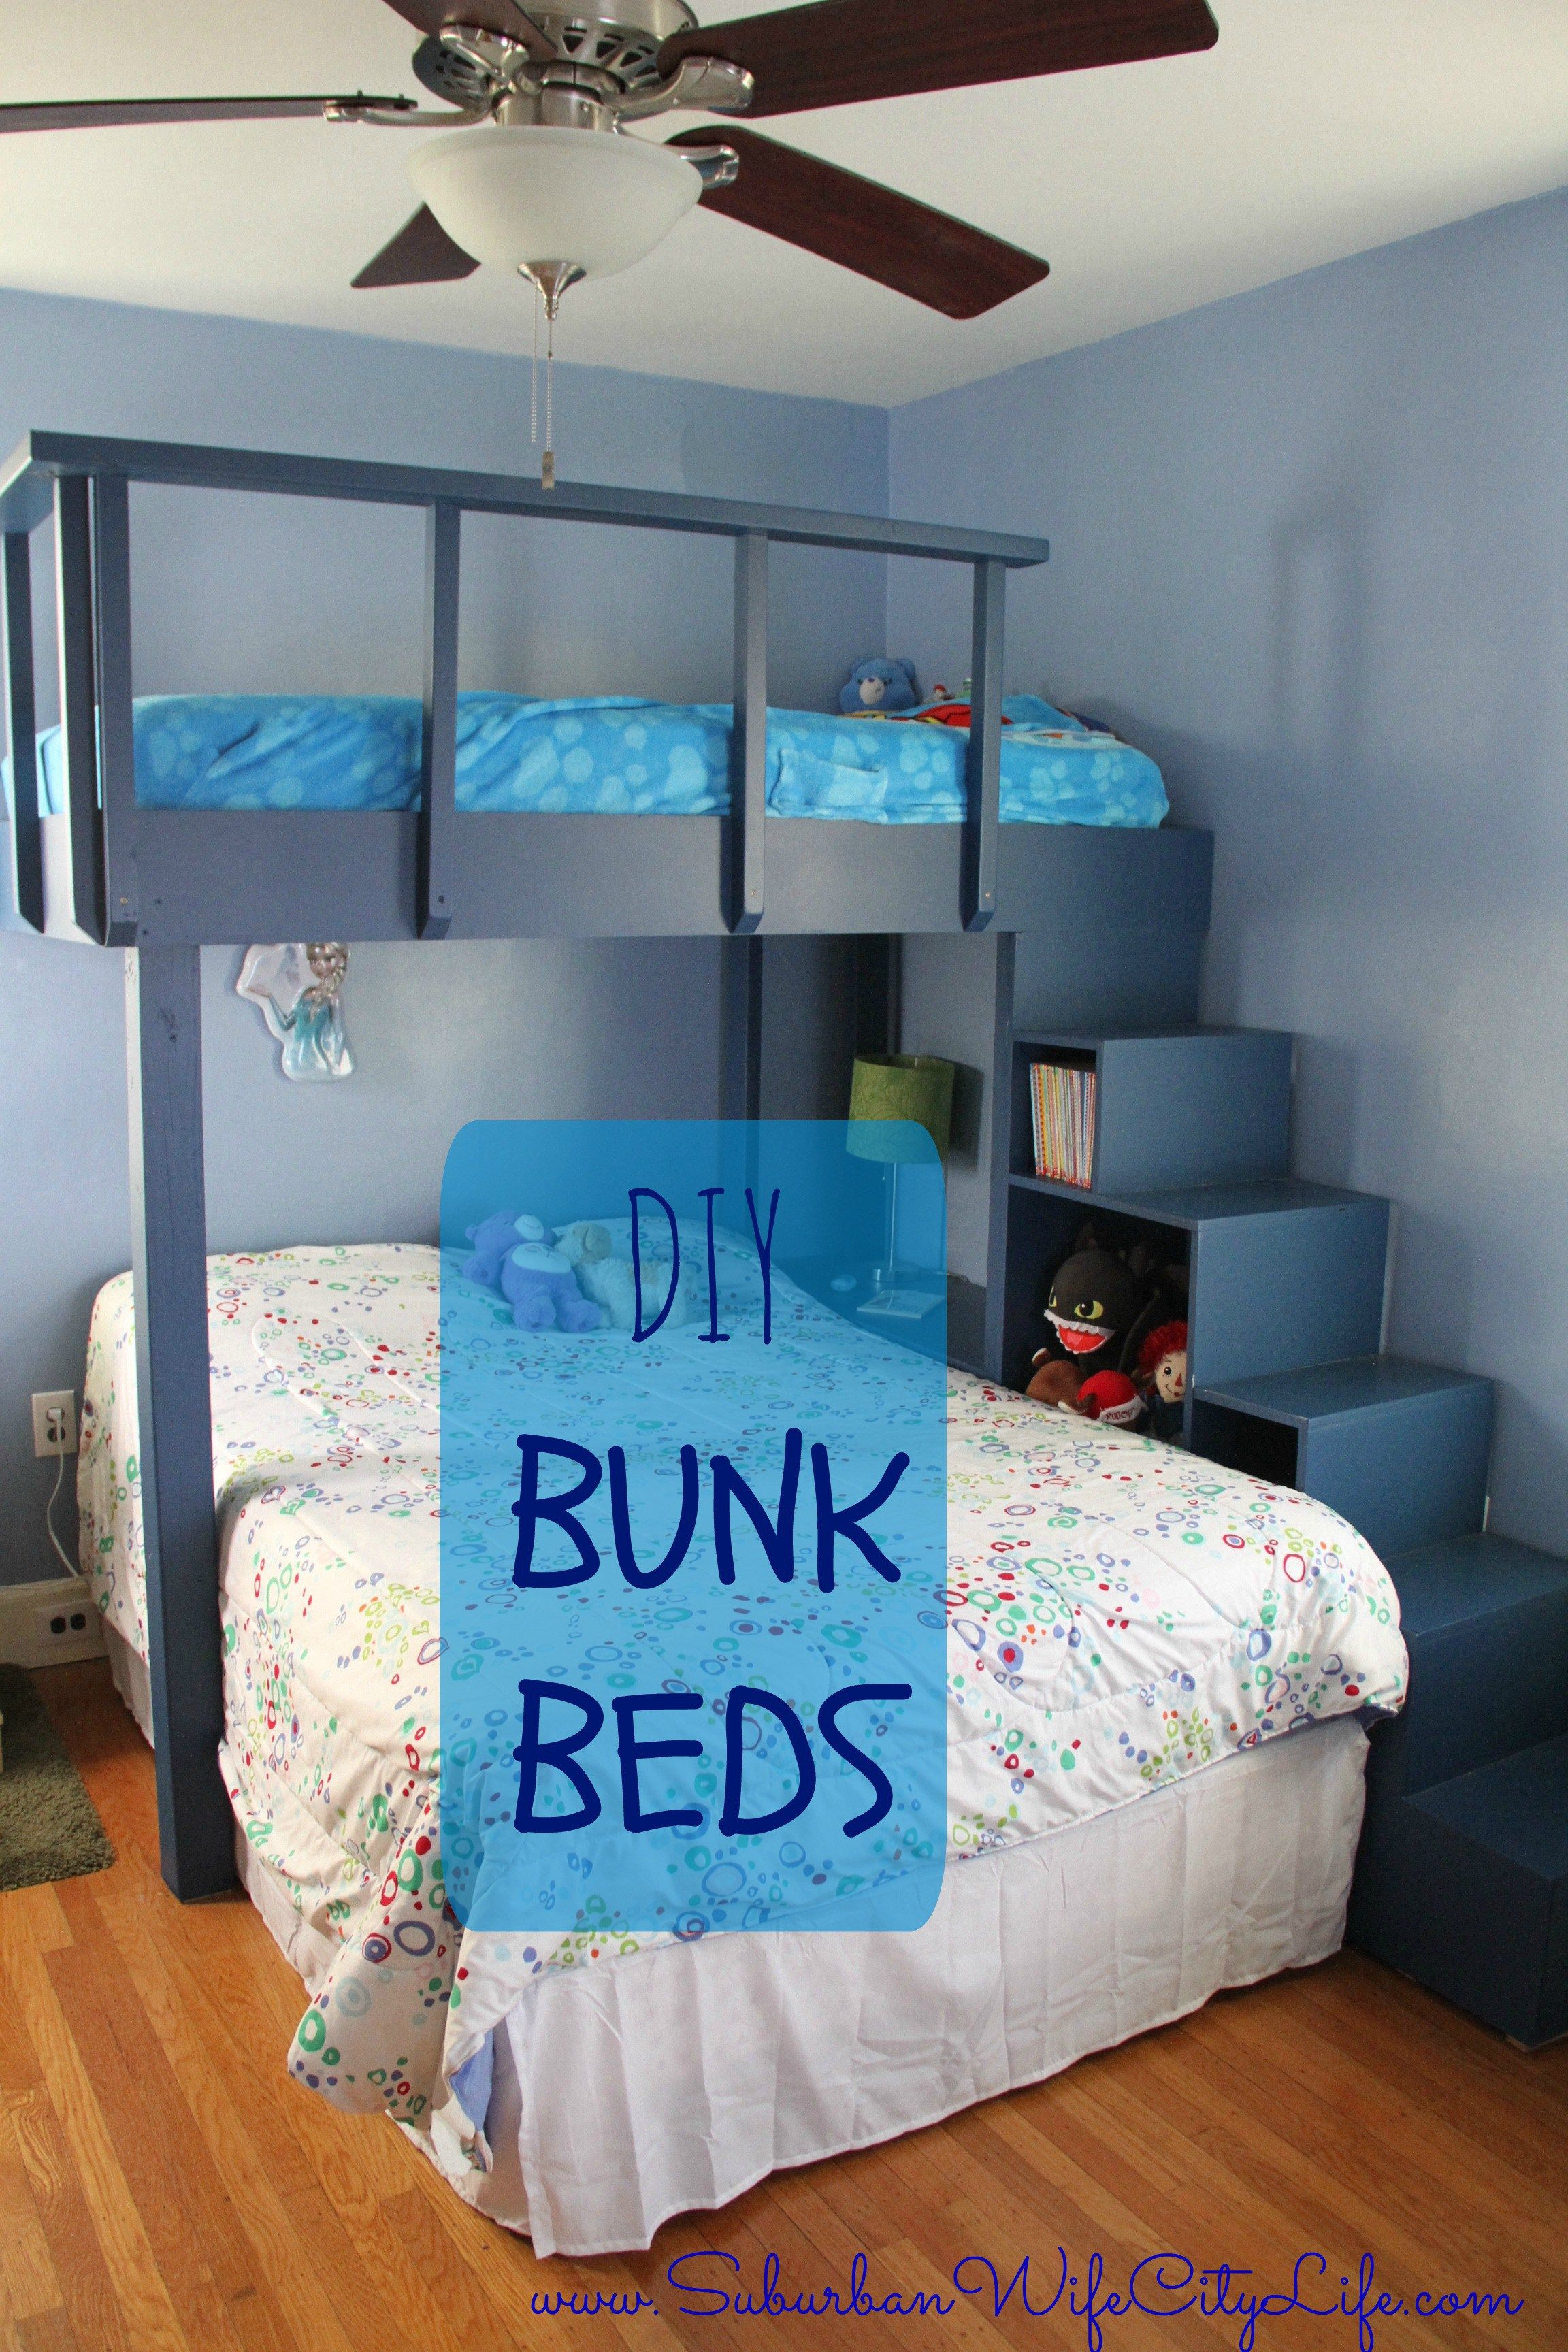 Loft bed plans with desk and shelves  DIY Bunk Beds  Connor Ideas  Pinterest  Bunk beds Bed and Room